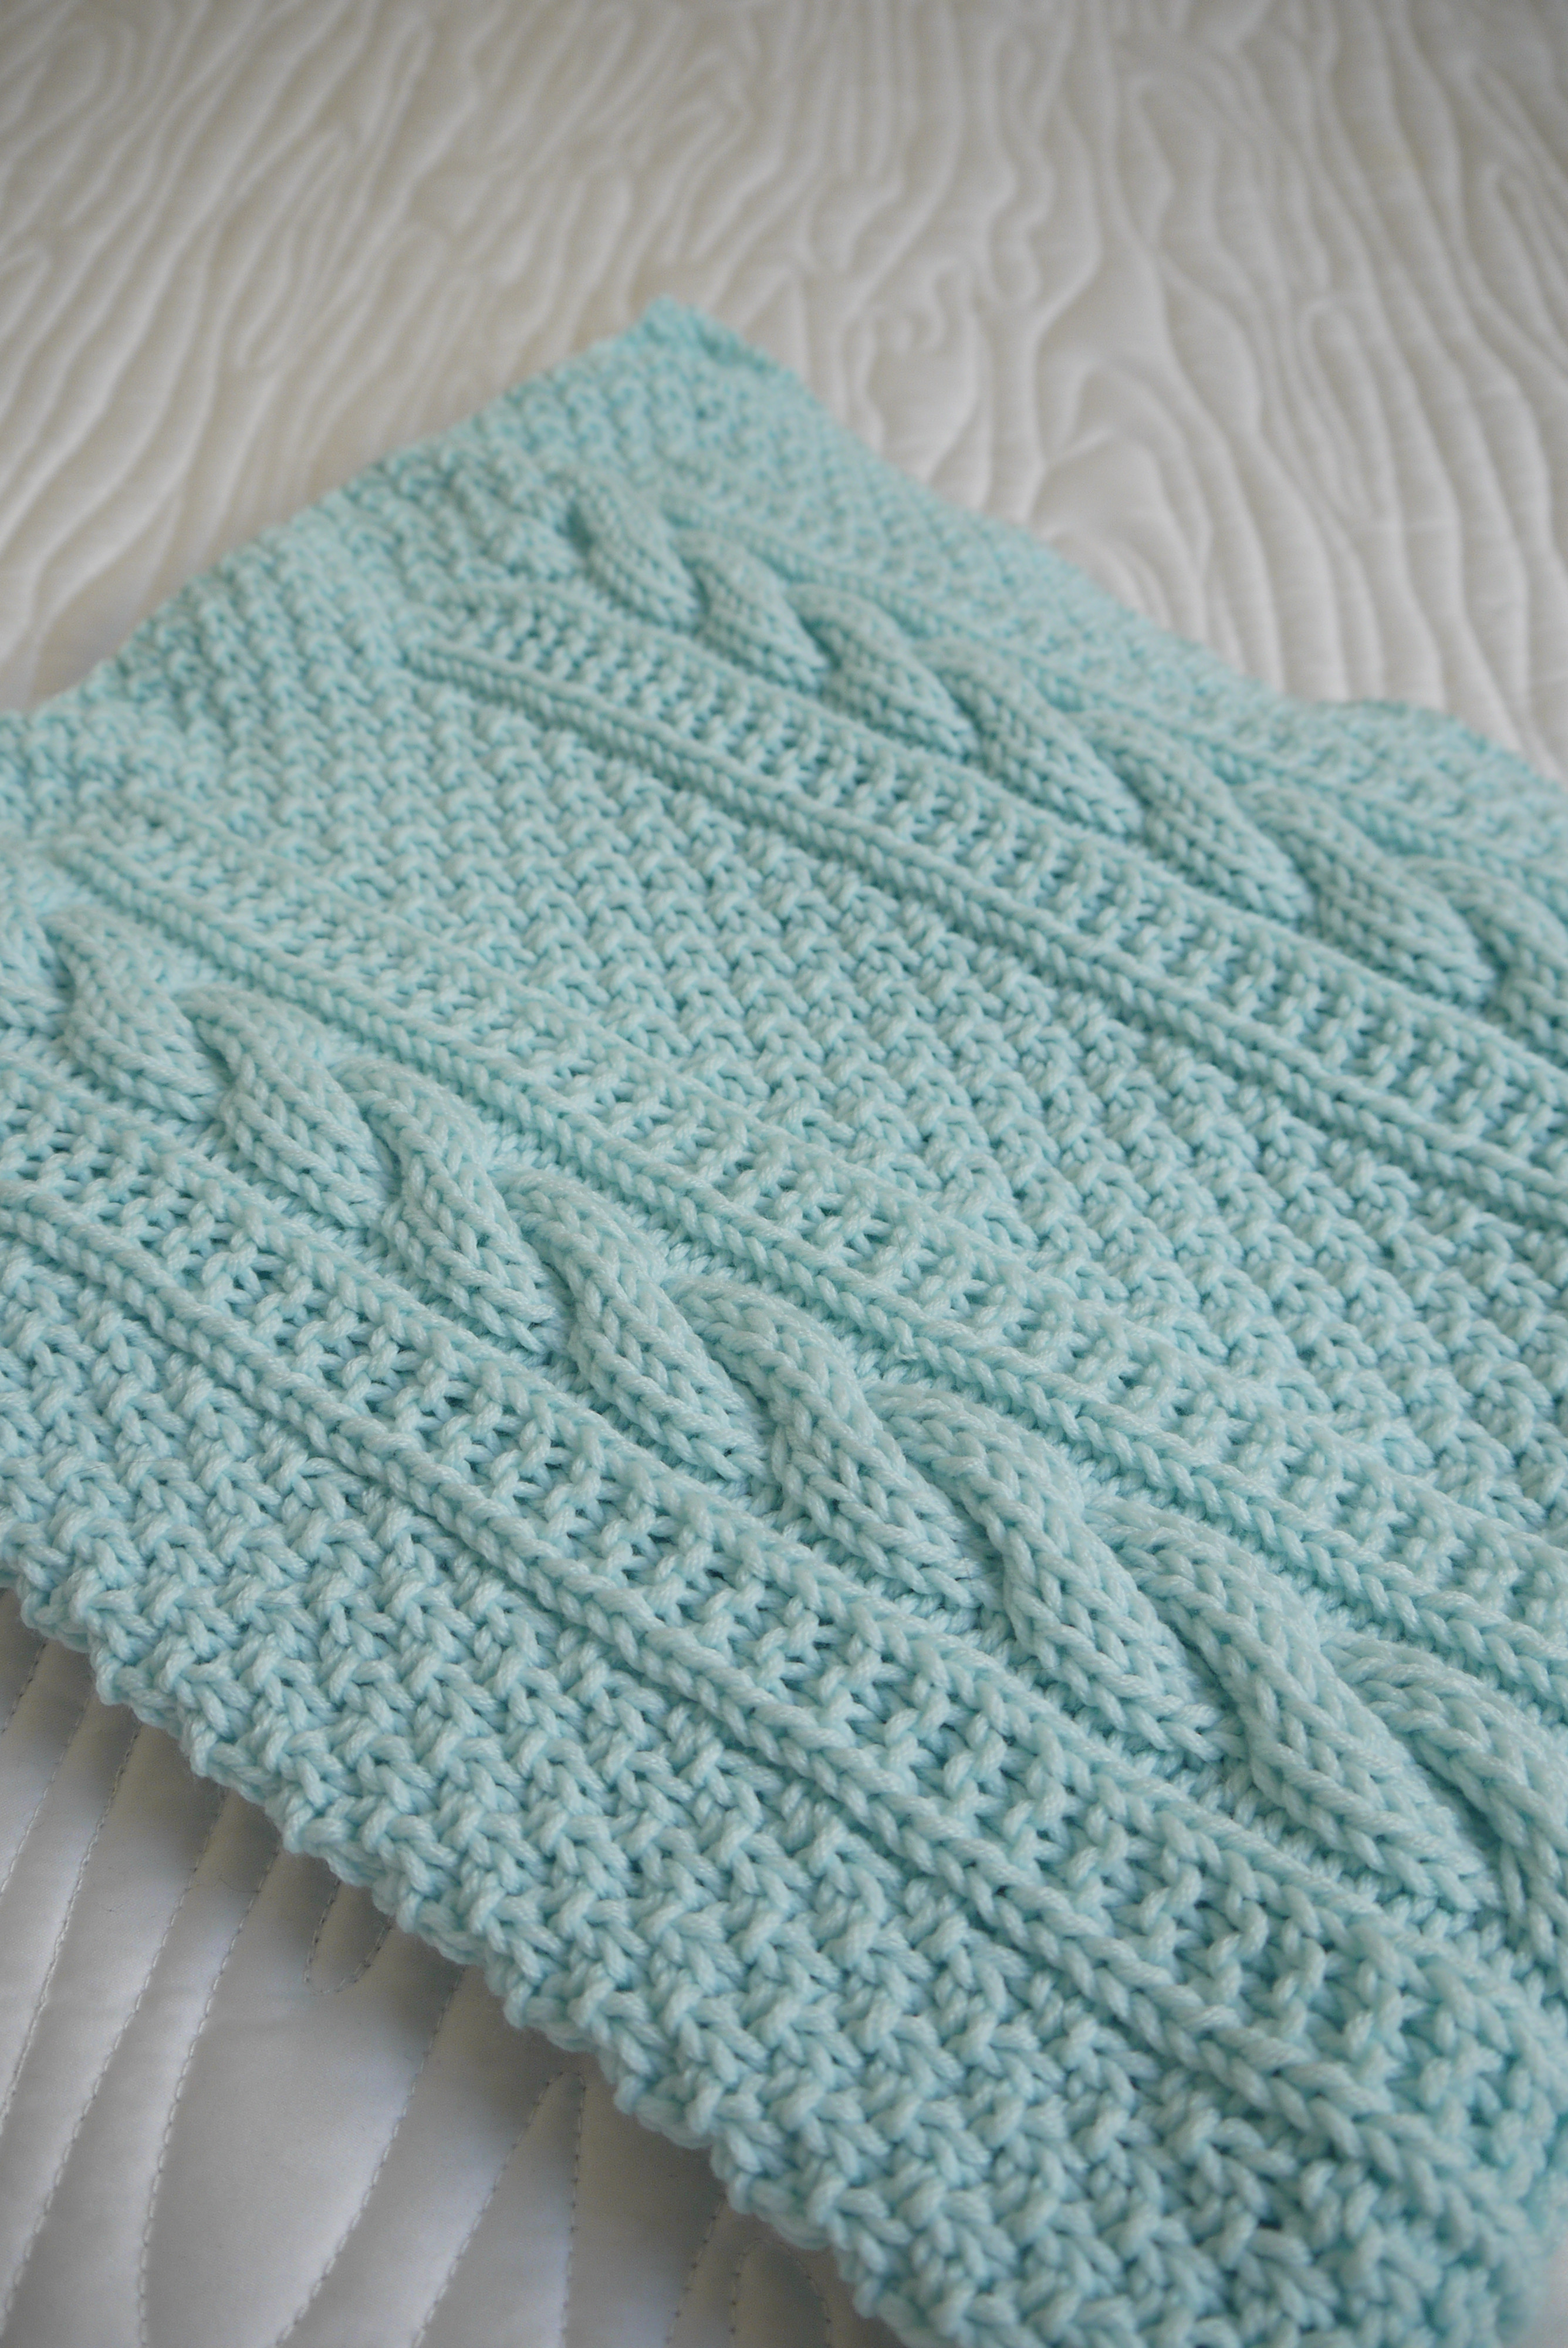 Knitted Baby Blanket Lovely Free Baby Blanket Knitting Patterns Double Knitting Of Amazing 46 Pictures Knitted Baby Blanket